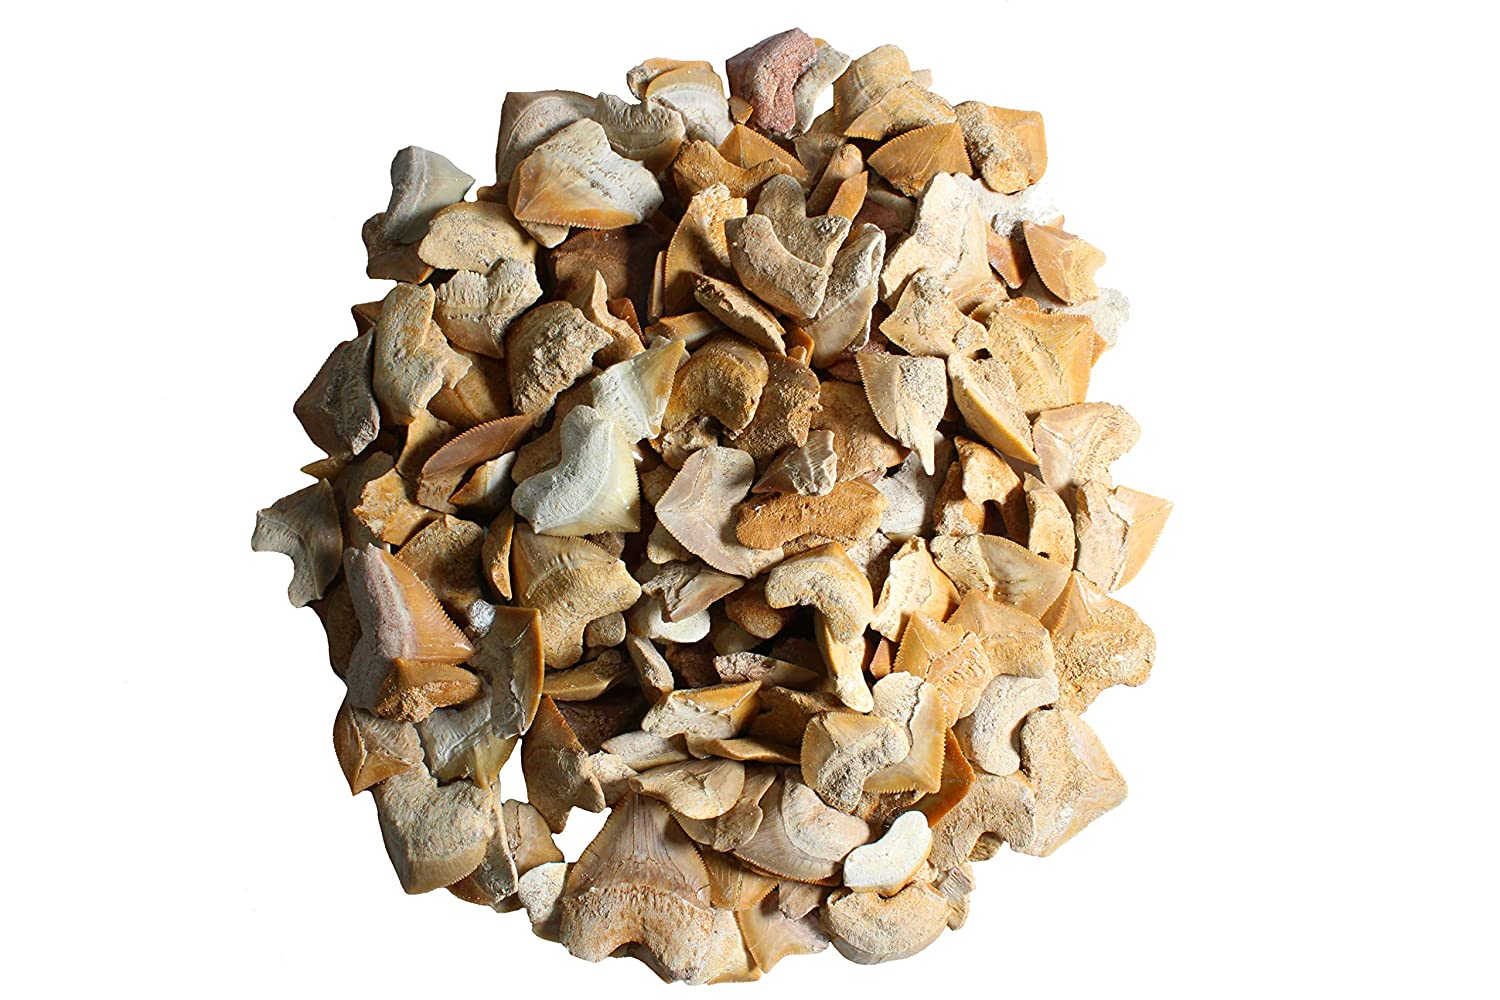 1 2 LB Corax Shark Teeth Wholesale Bulk Real Charlotte Mall Sales of SALE items from new works - Authentic Fossils